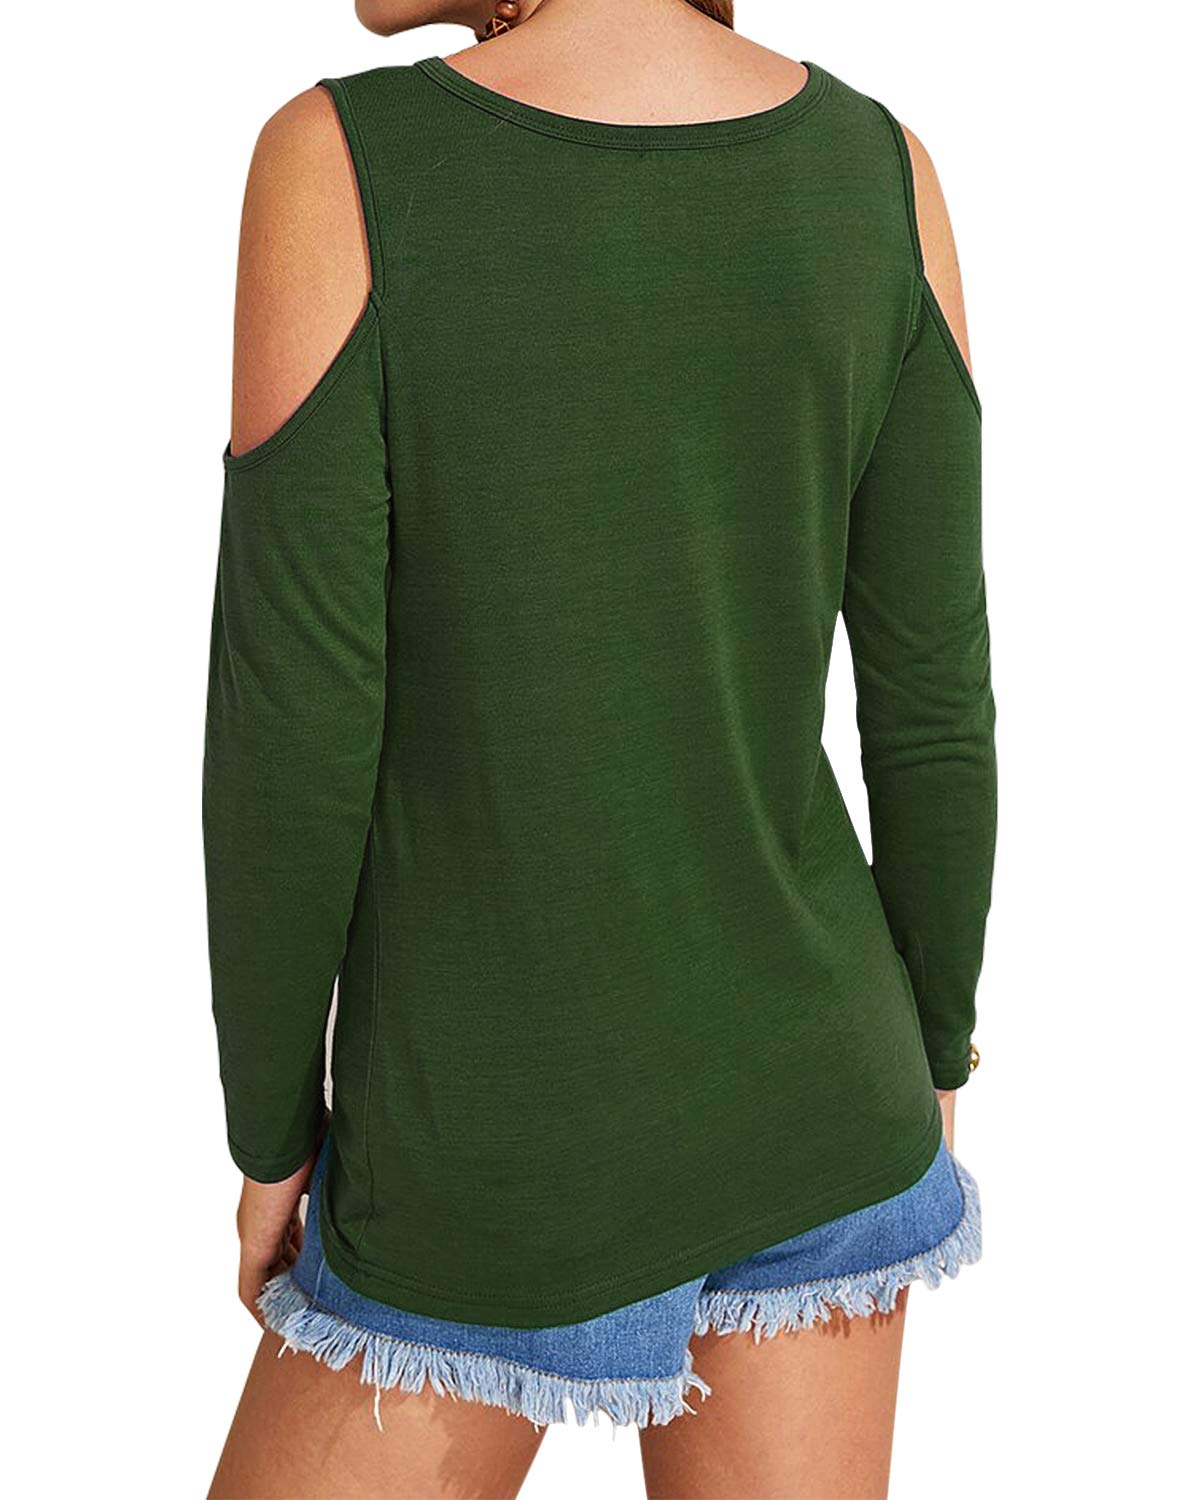 Eanklosco Women's Long Sleeve Cold Shoulder Cut Out T Shirts Casual Knot Tunic Tops (Army Green, L)